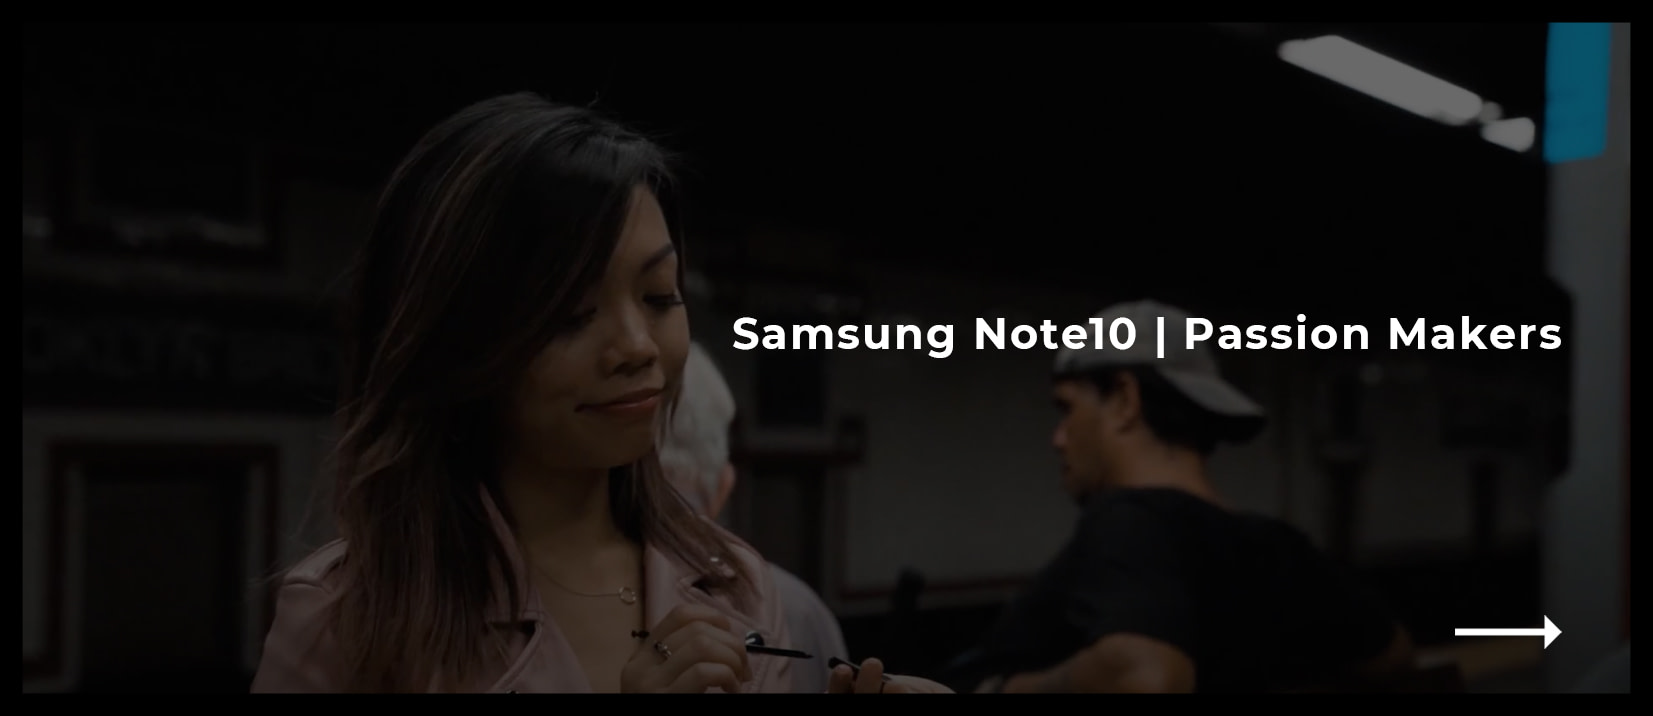 Samsung Note10 - Passion Makers (Jenn)